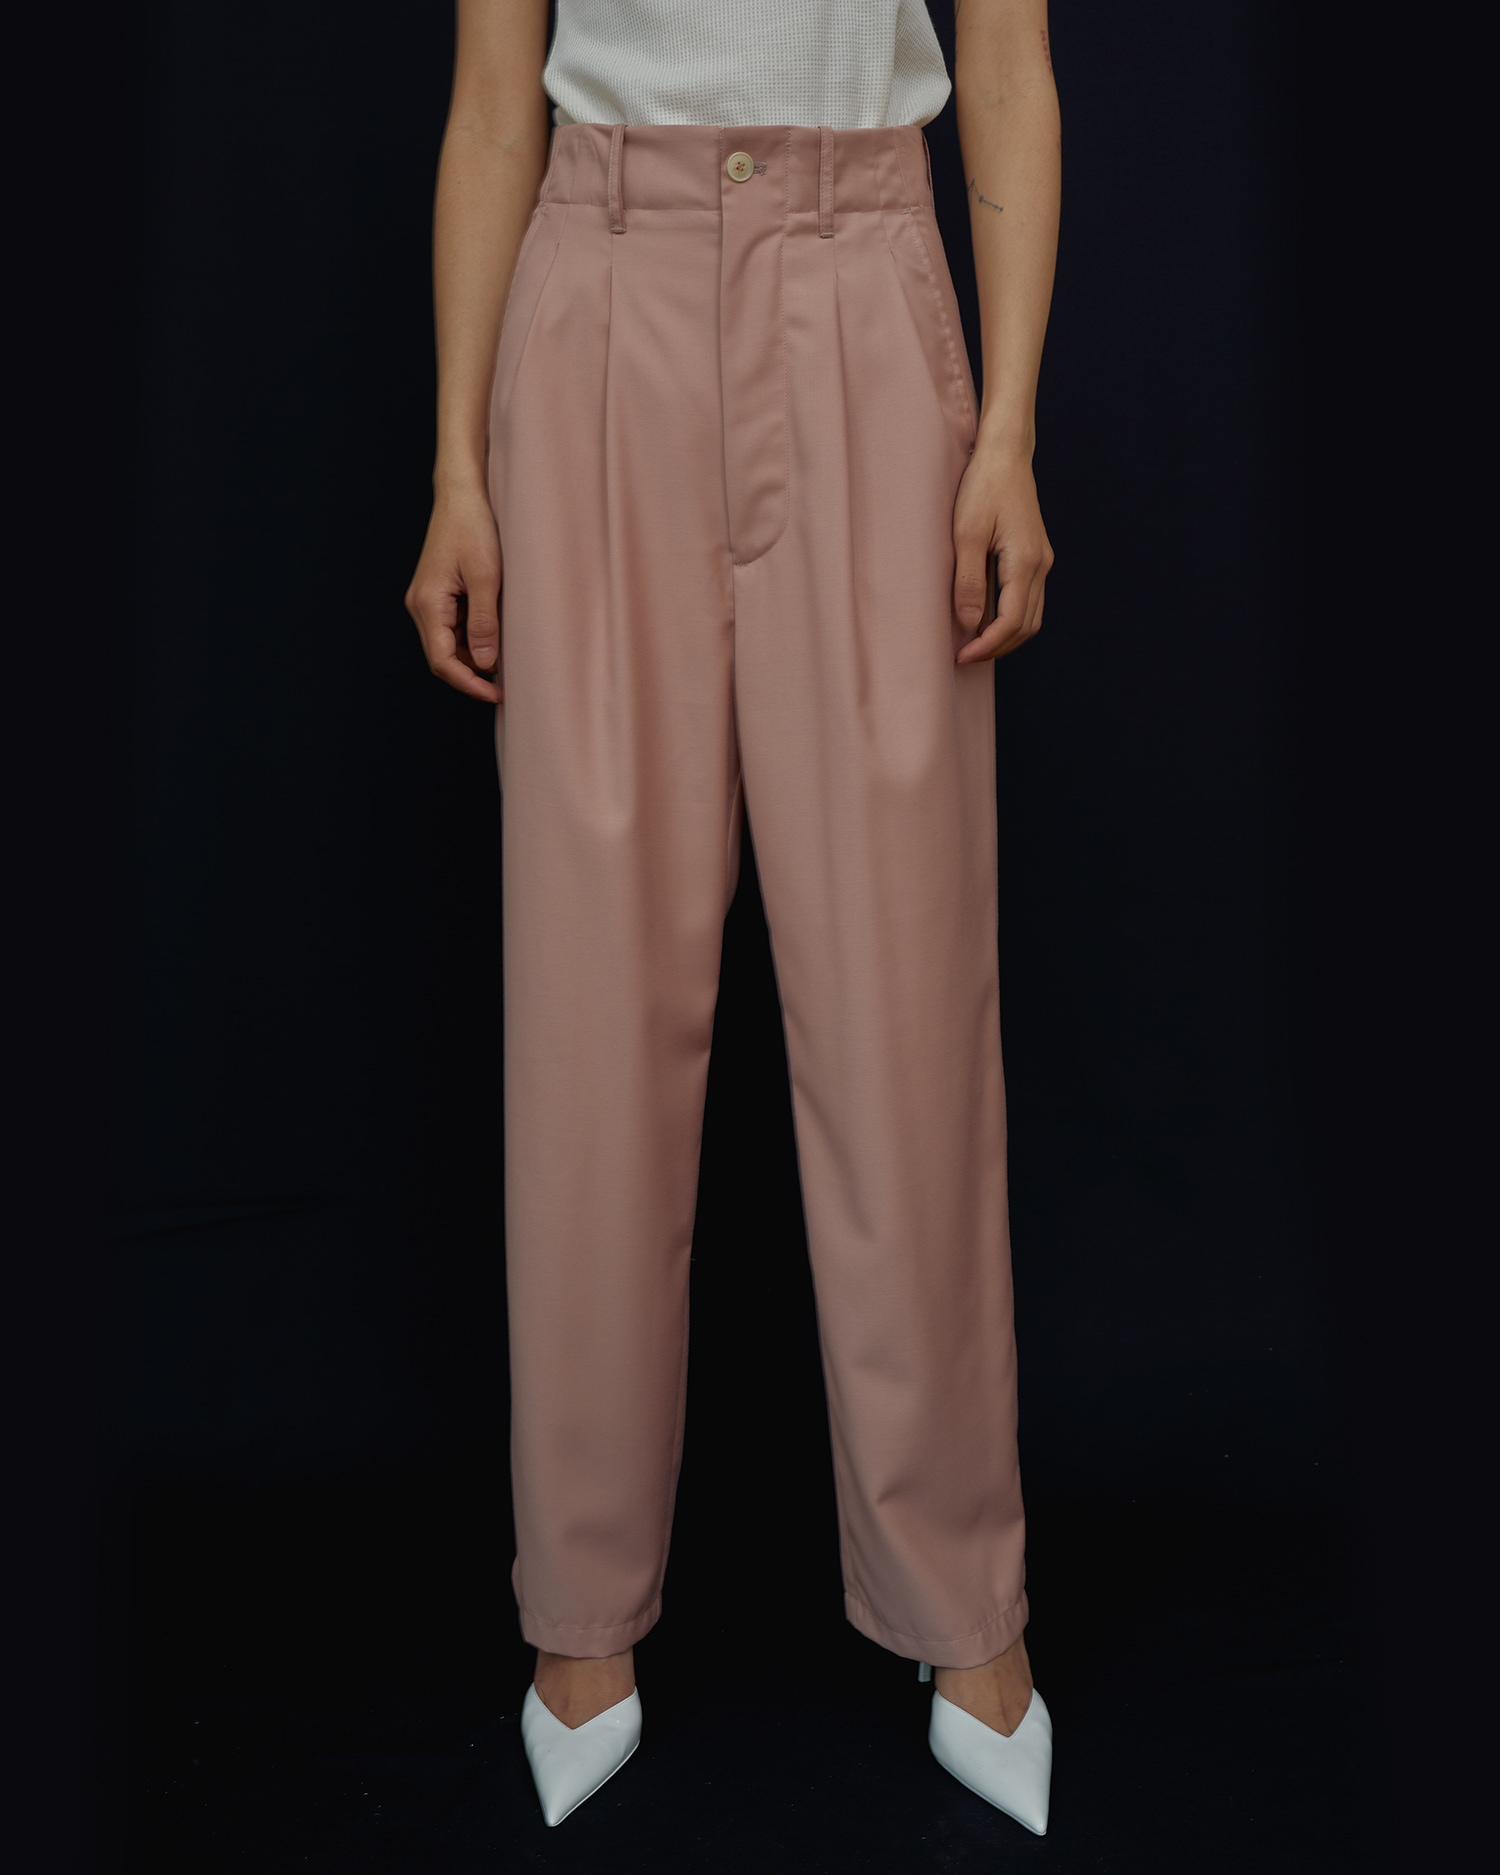 Gender Neutral Pants By One DNA In Pink